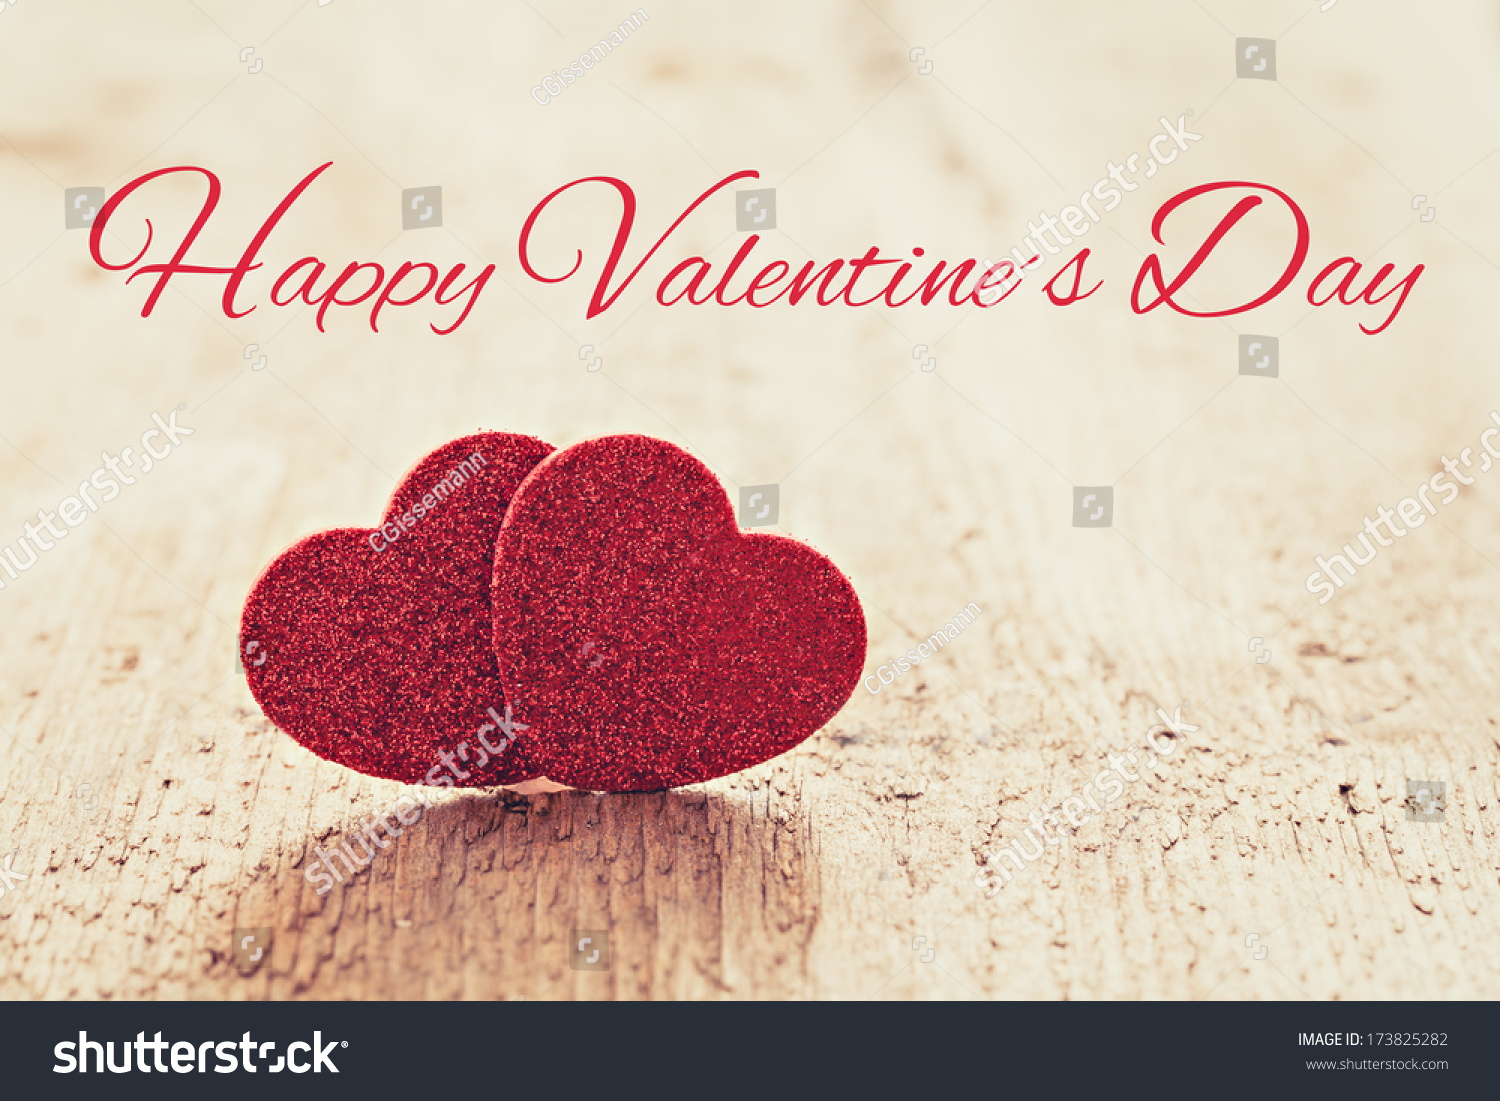 Card Valentines Day Text Happy Valentines Photo 173825282 – Valentines Text Card